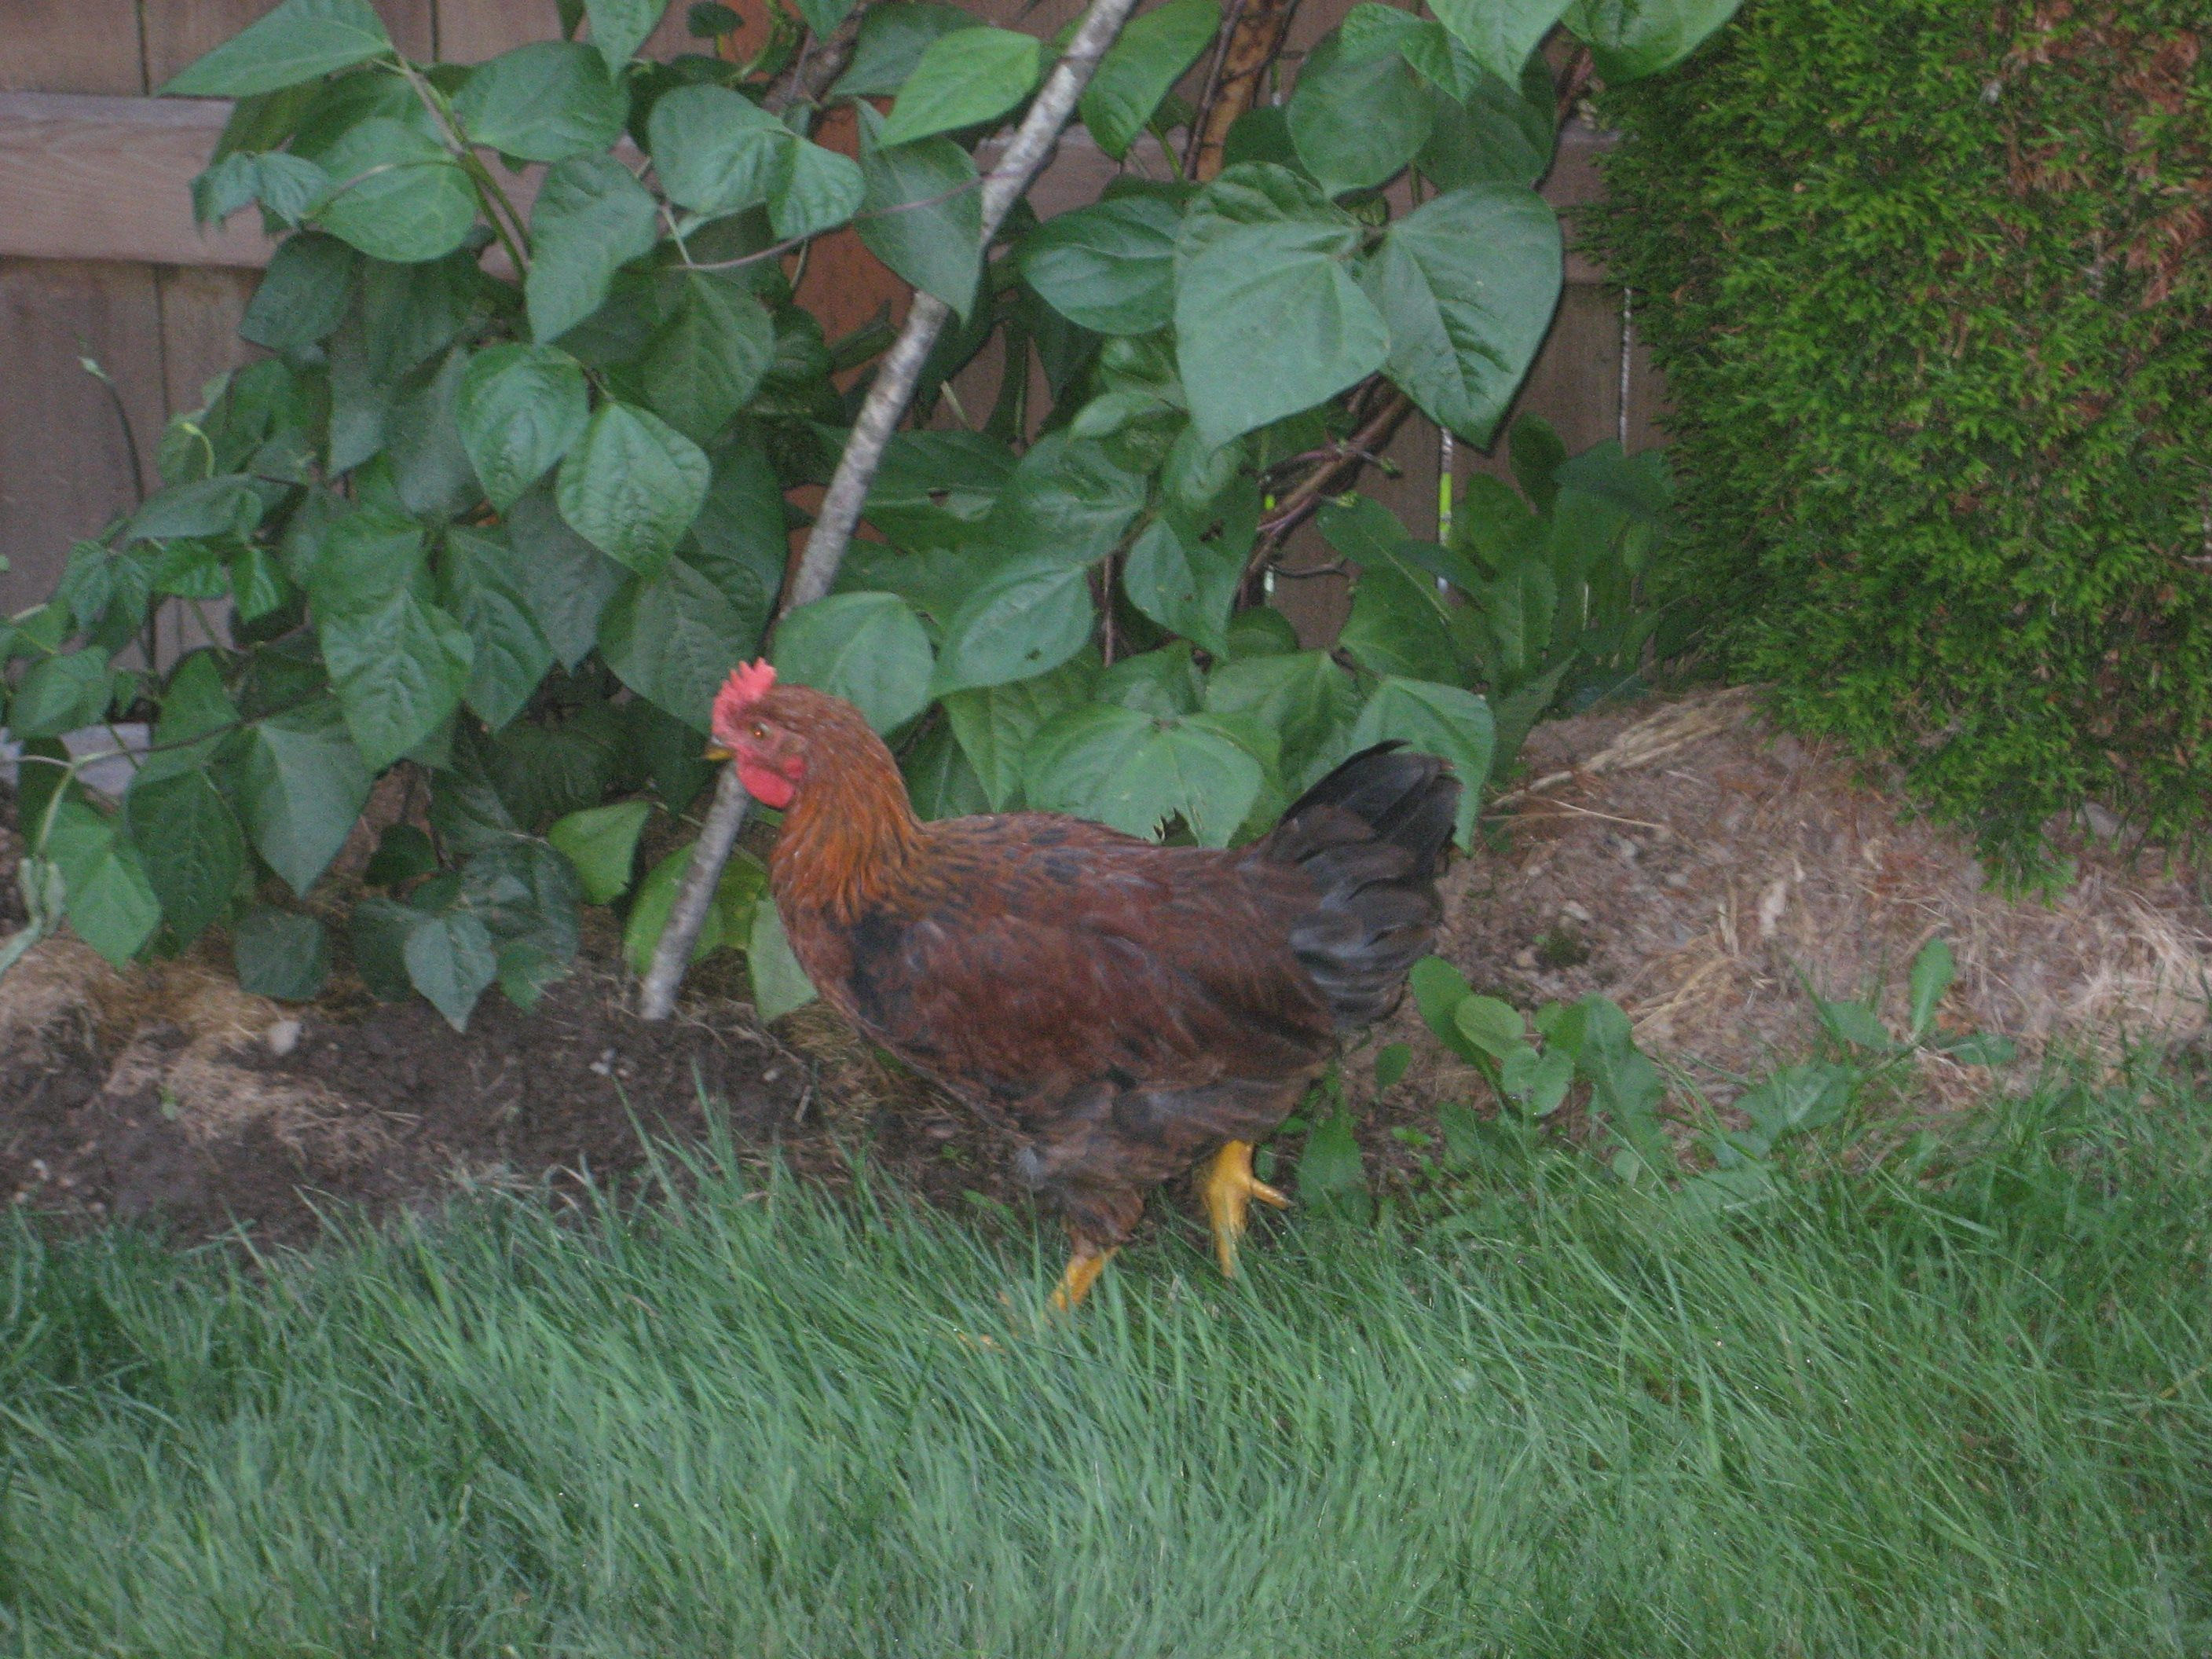 SPY CHICKEN IN NY BACKYARD! ... 2 yrs ago :P